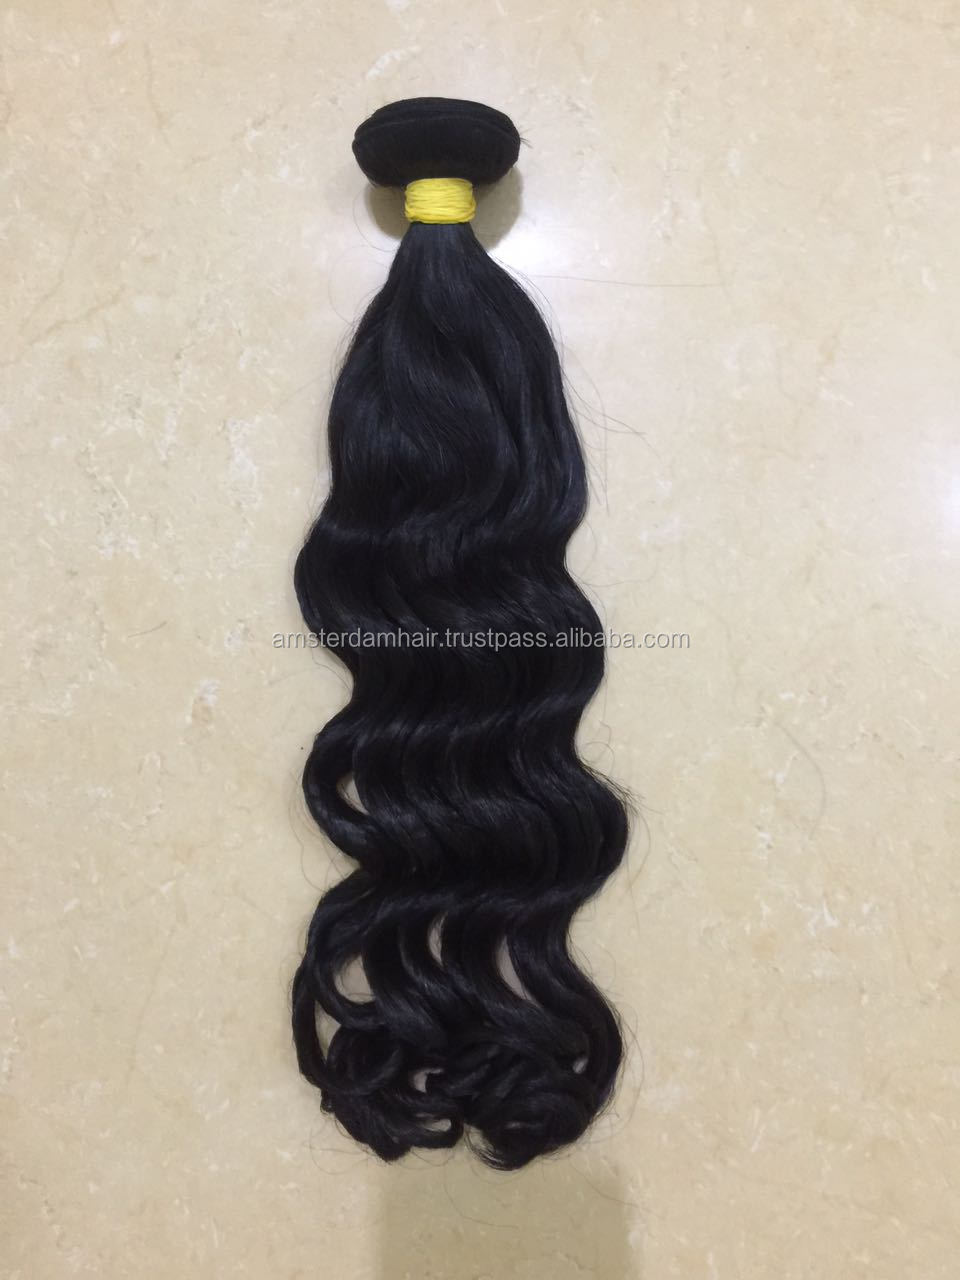 Wholesales price different types of curly weave hair raw curly wholesales price different types of curly weave hair raw curly hair extensions pmusecretfo Choice Image